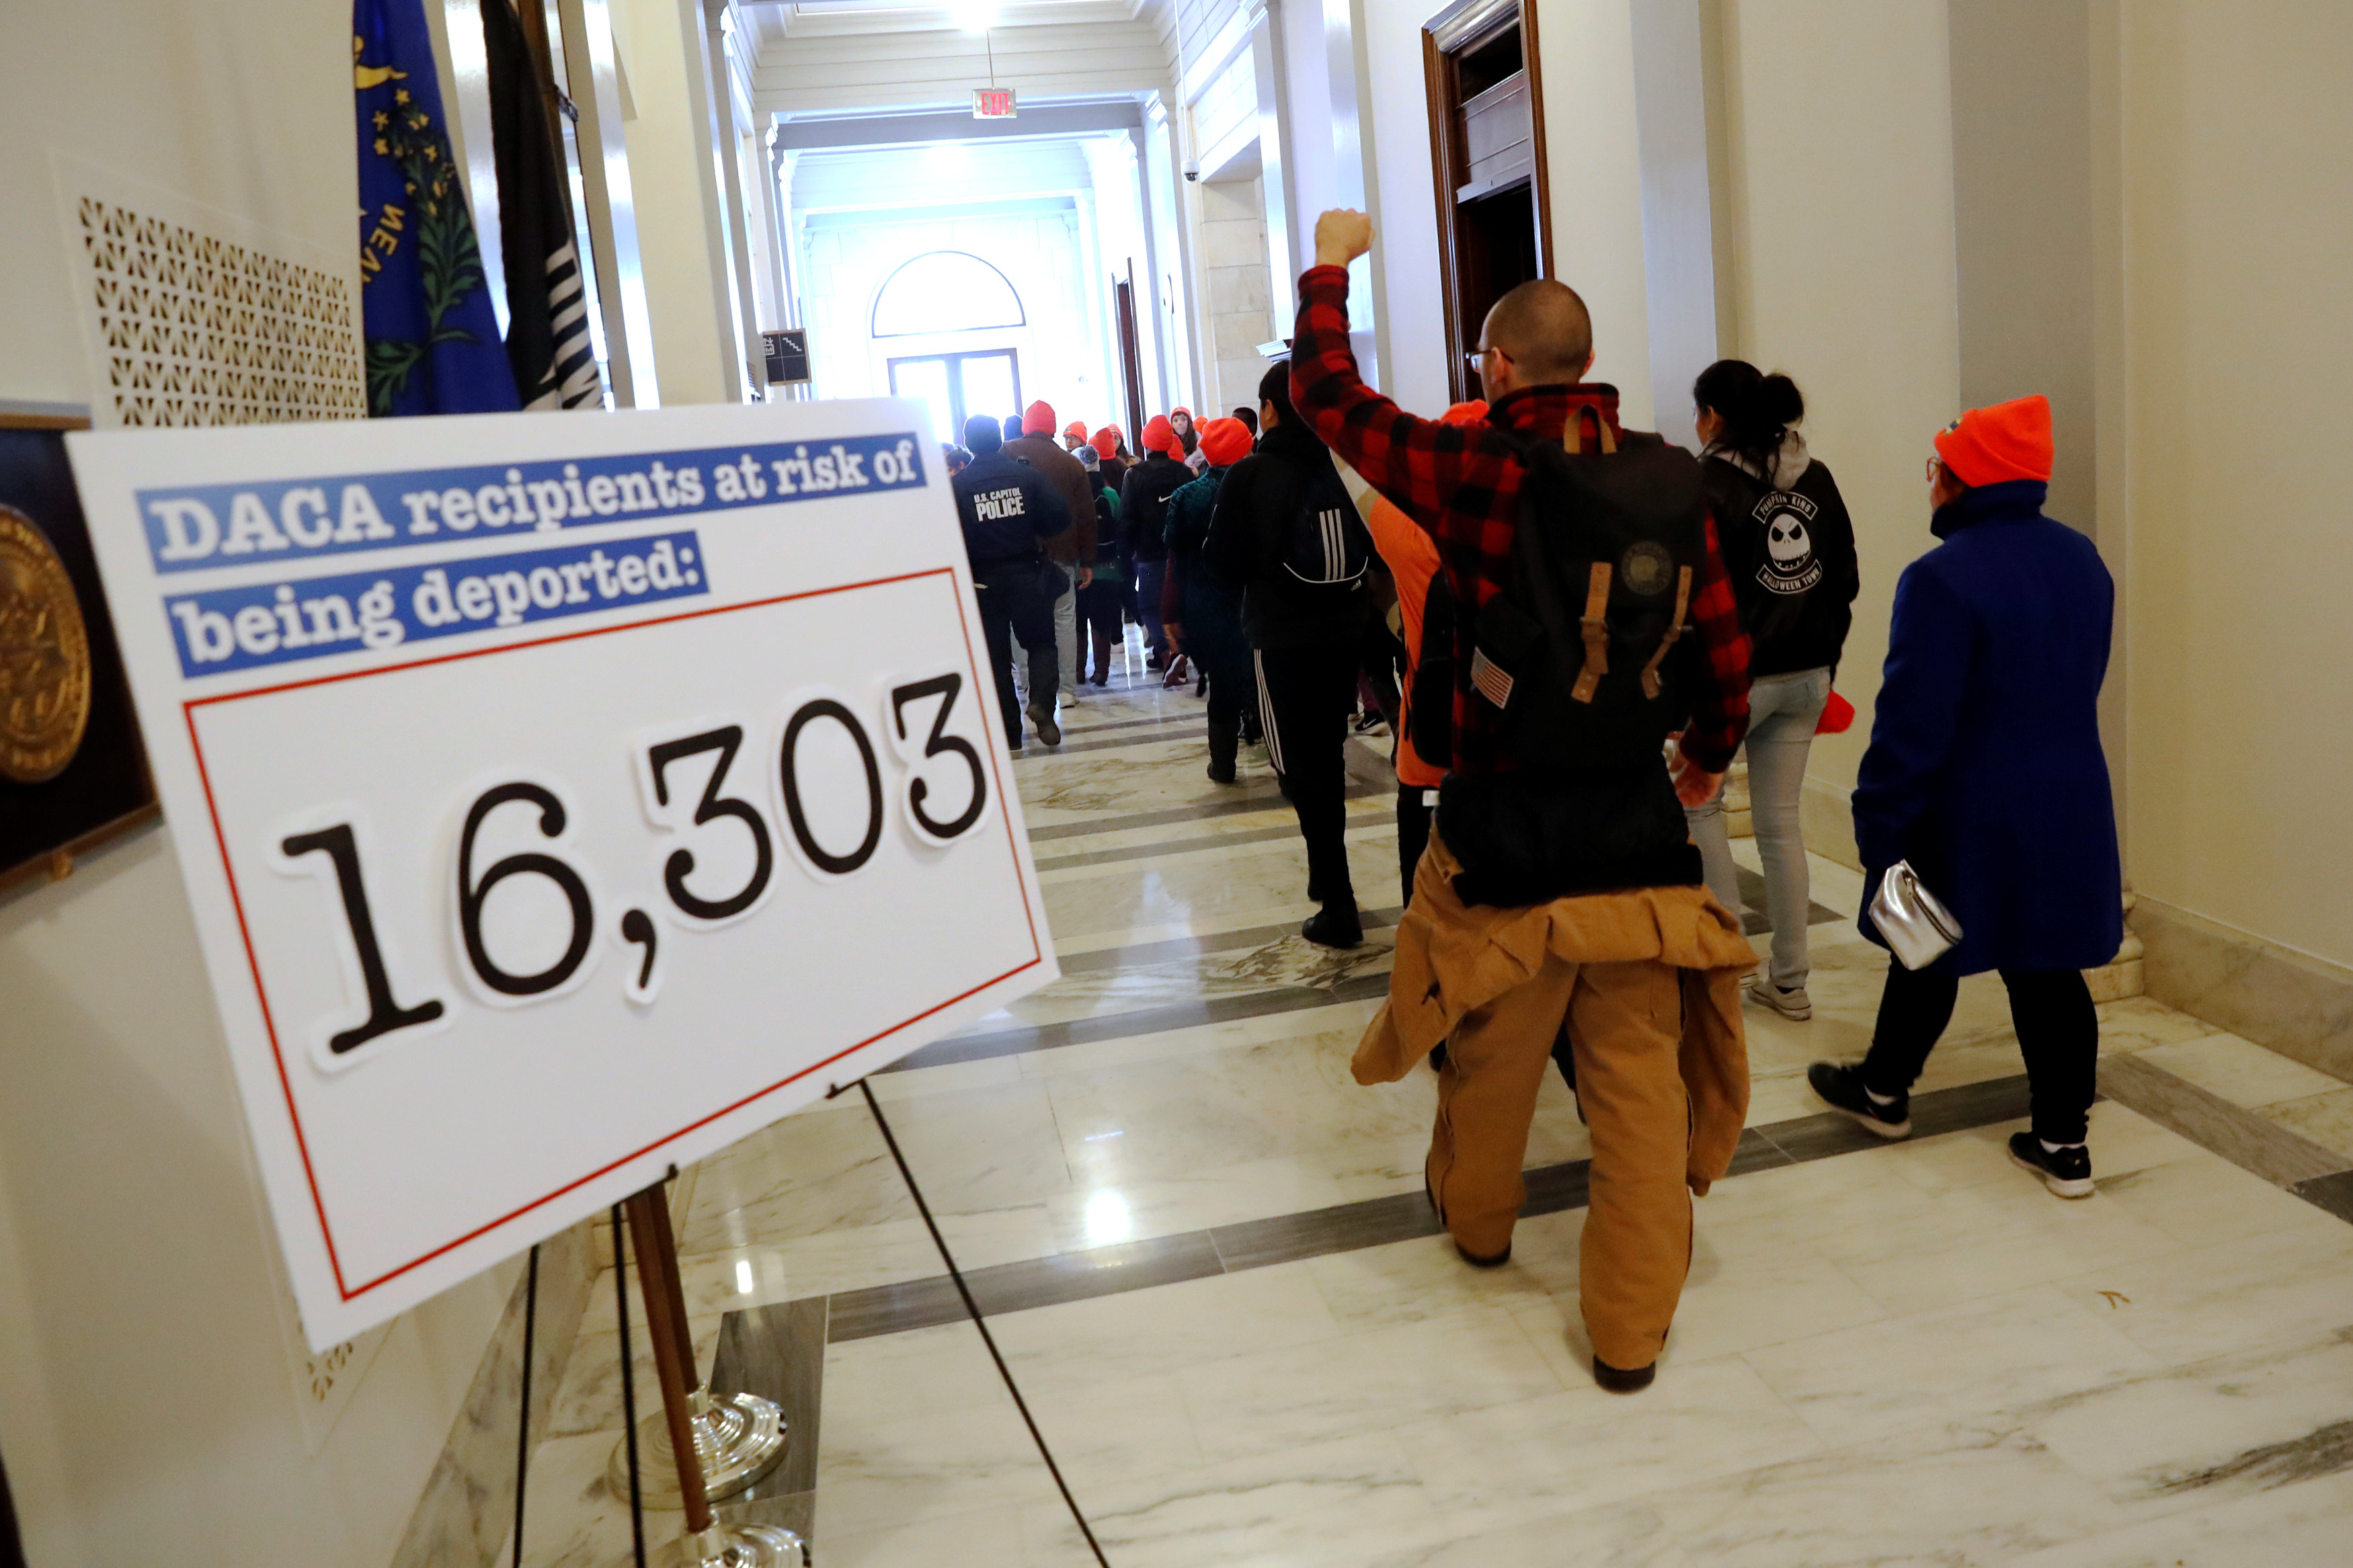 "Demonstrators calling for new protections for so-called ""Dreamers,"" undocumented children brought to the U.S. by their immigrant parents, walk through a senate office building on Capitol Hill in Washington, U.S. January 17, 2018. REUTERS/Jonathan Ernst"